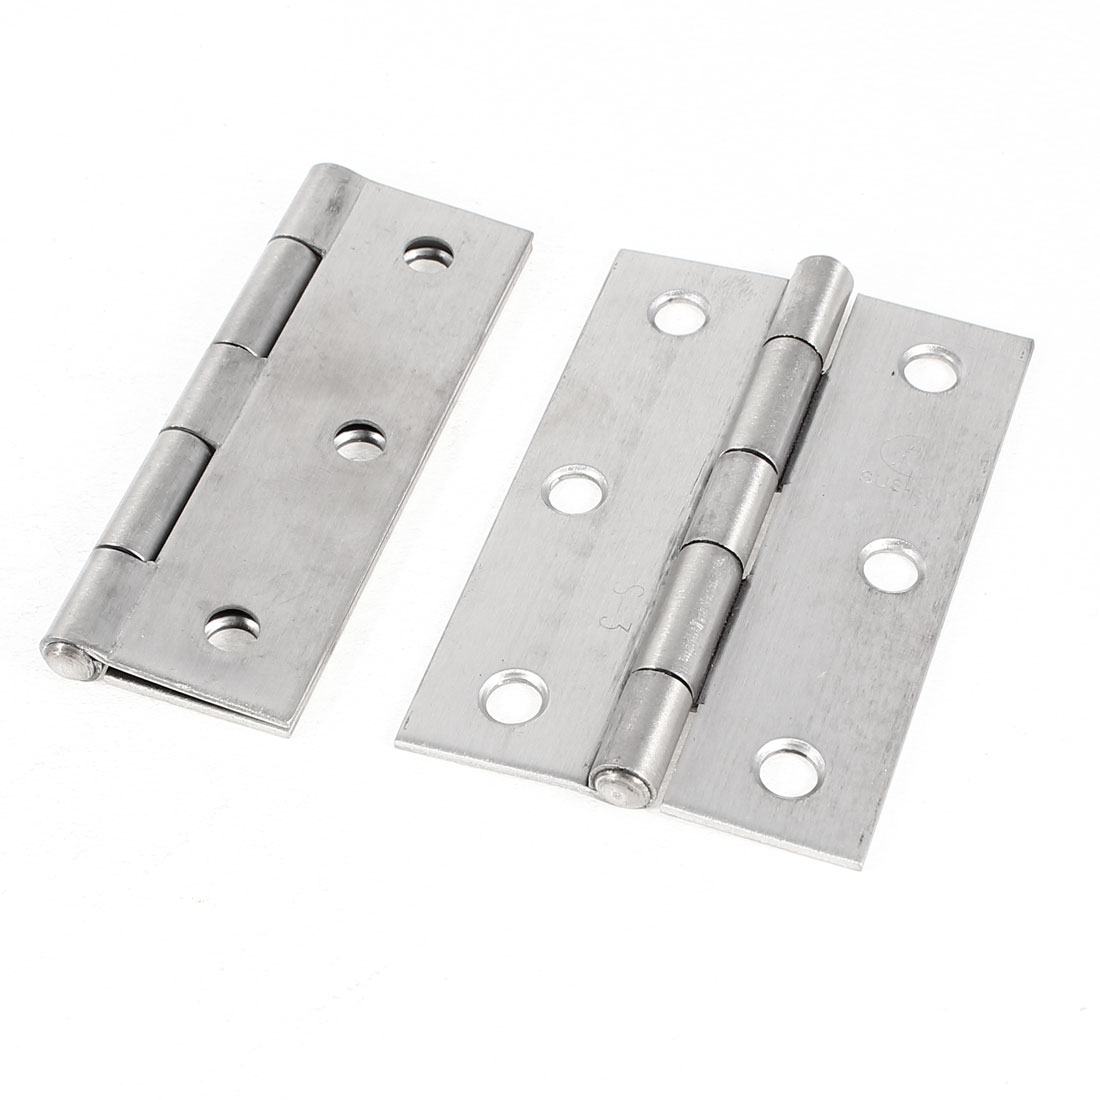 "2 Pcs Screws Mounted Silver Tone Cabinet Door Butt Hinges 3"" Long"